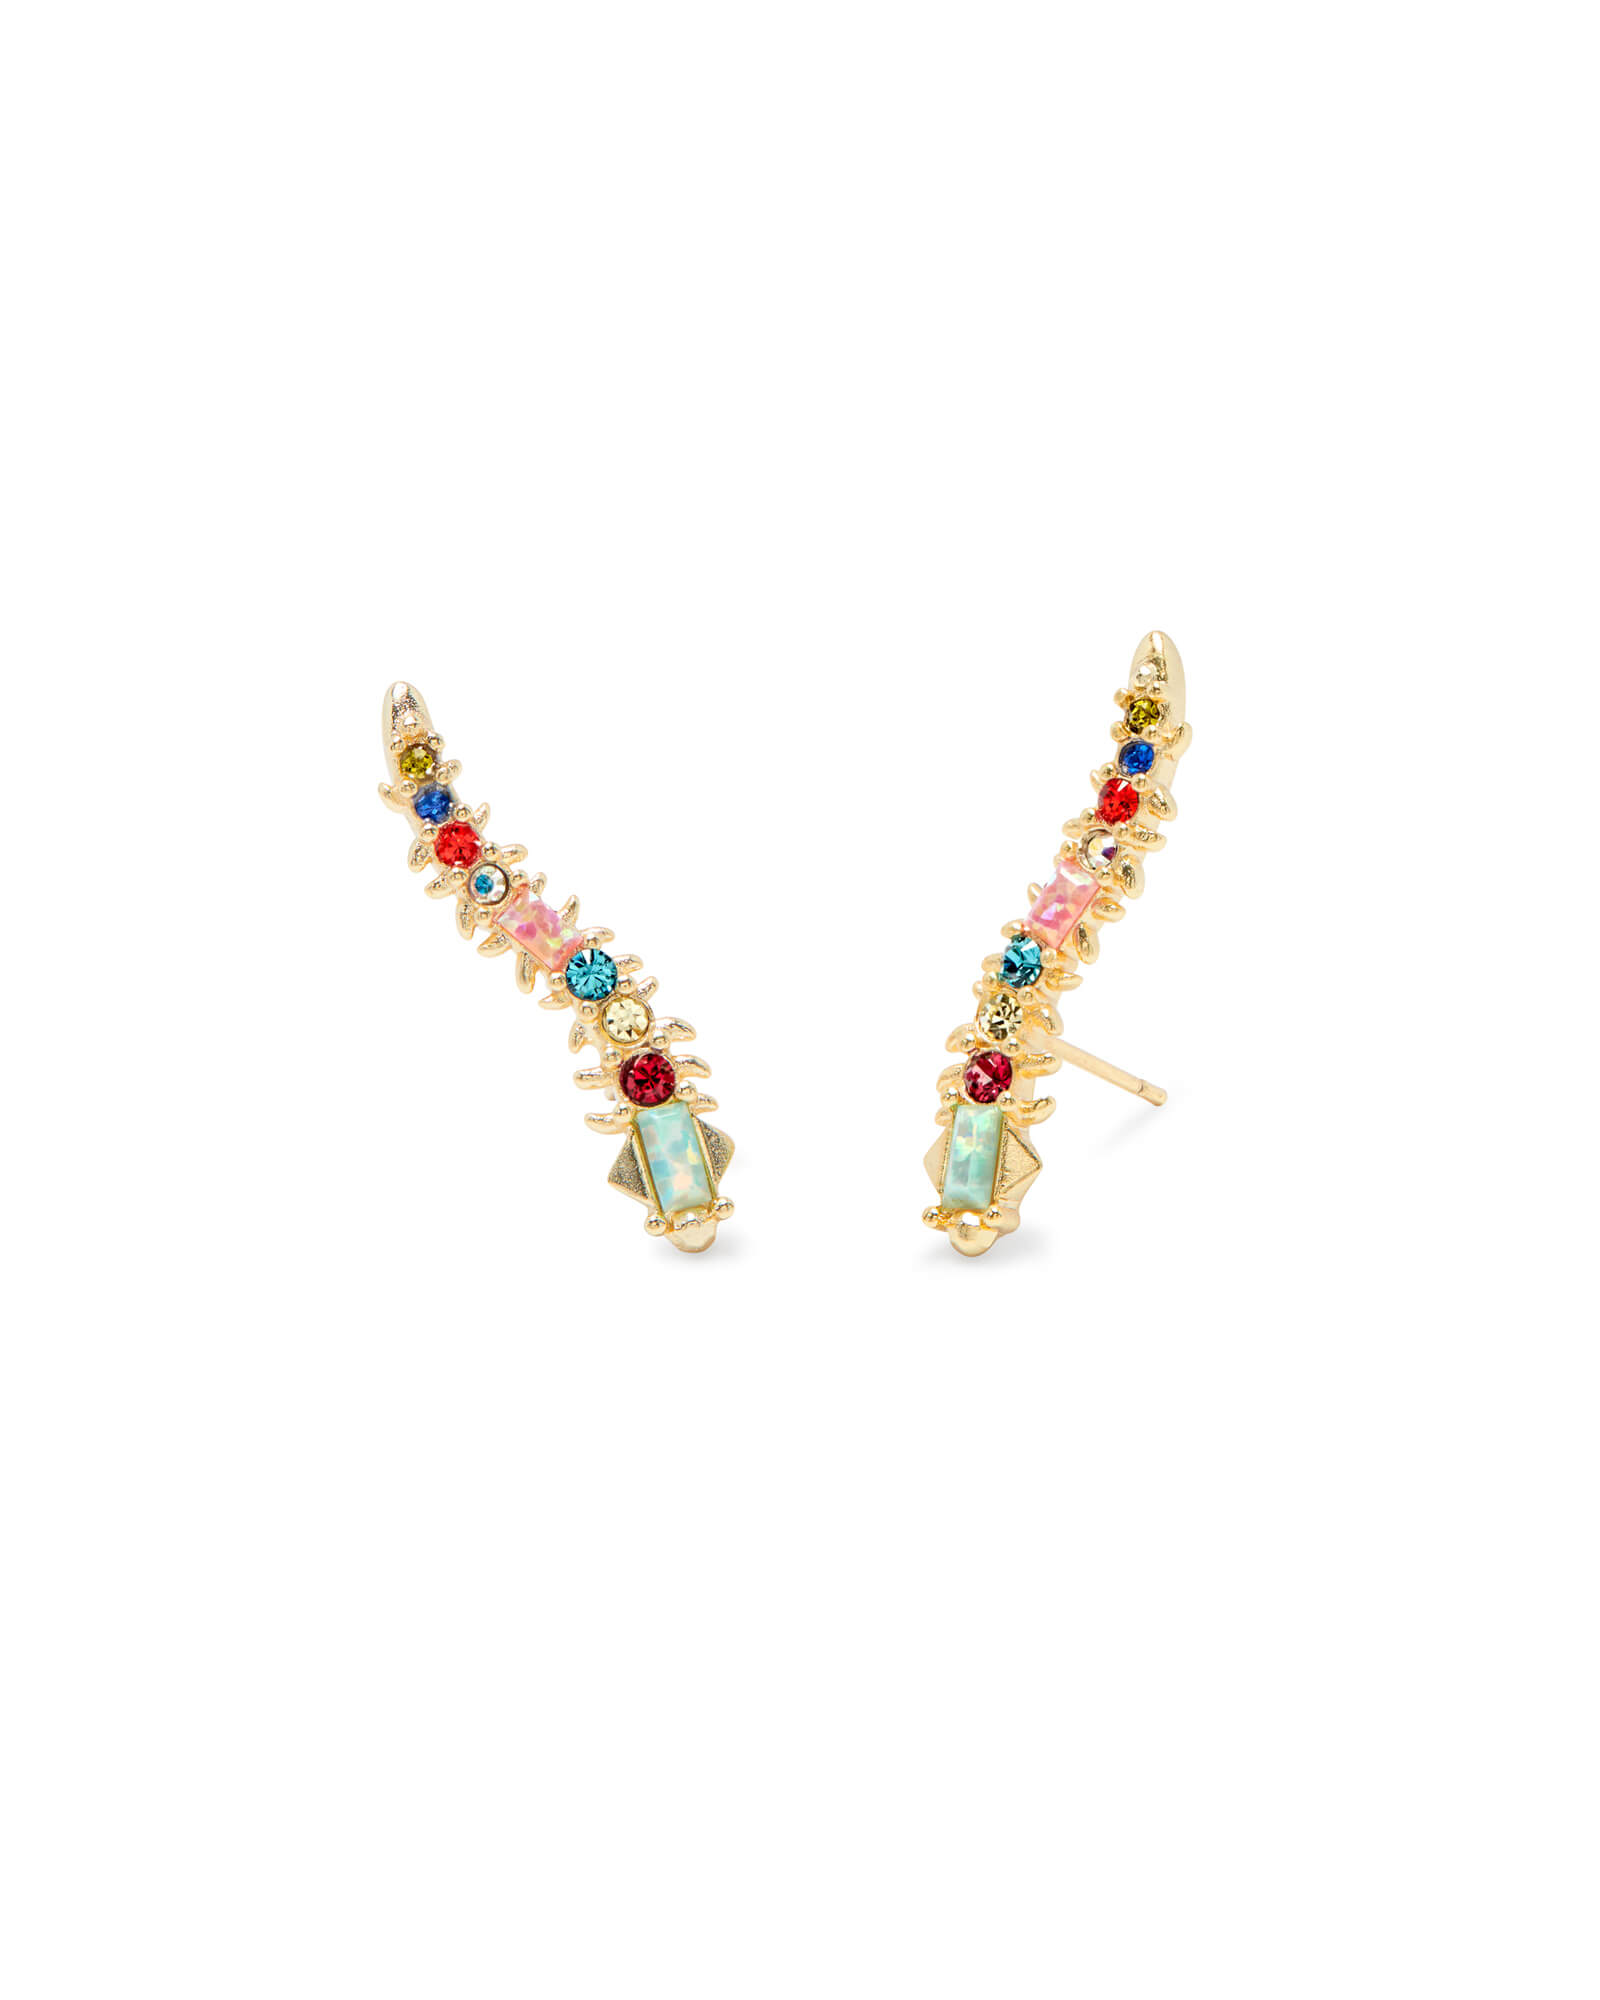 Sinclair Gold Ear Climbers In Multi Mix by Kendra Scott